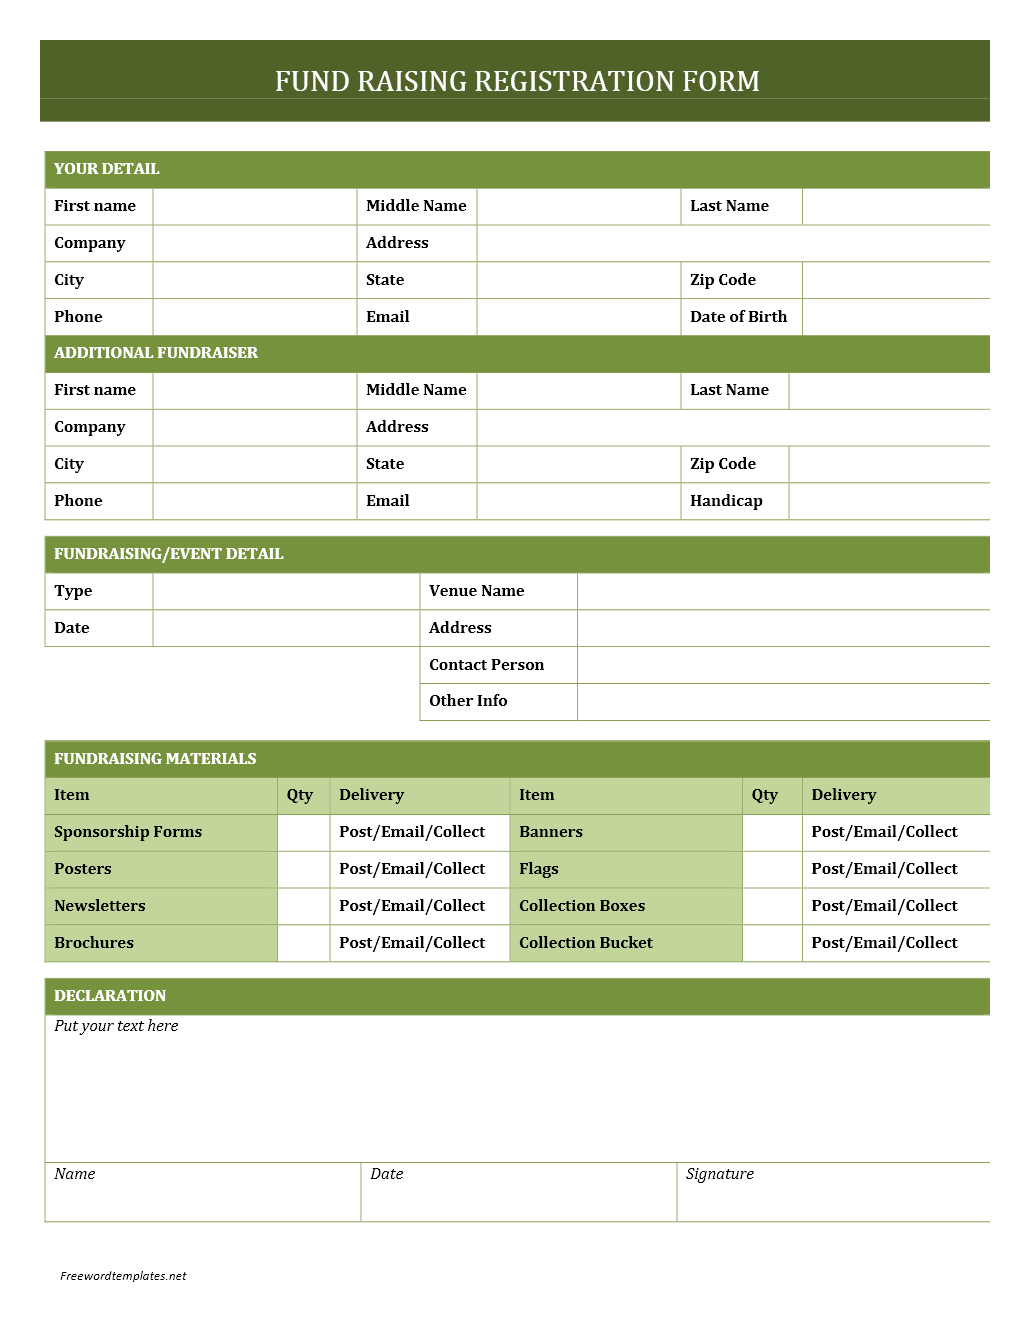 Freewordtemplates.net  Enrollment Form Format